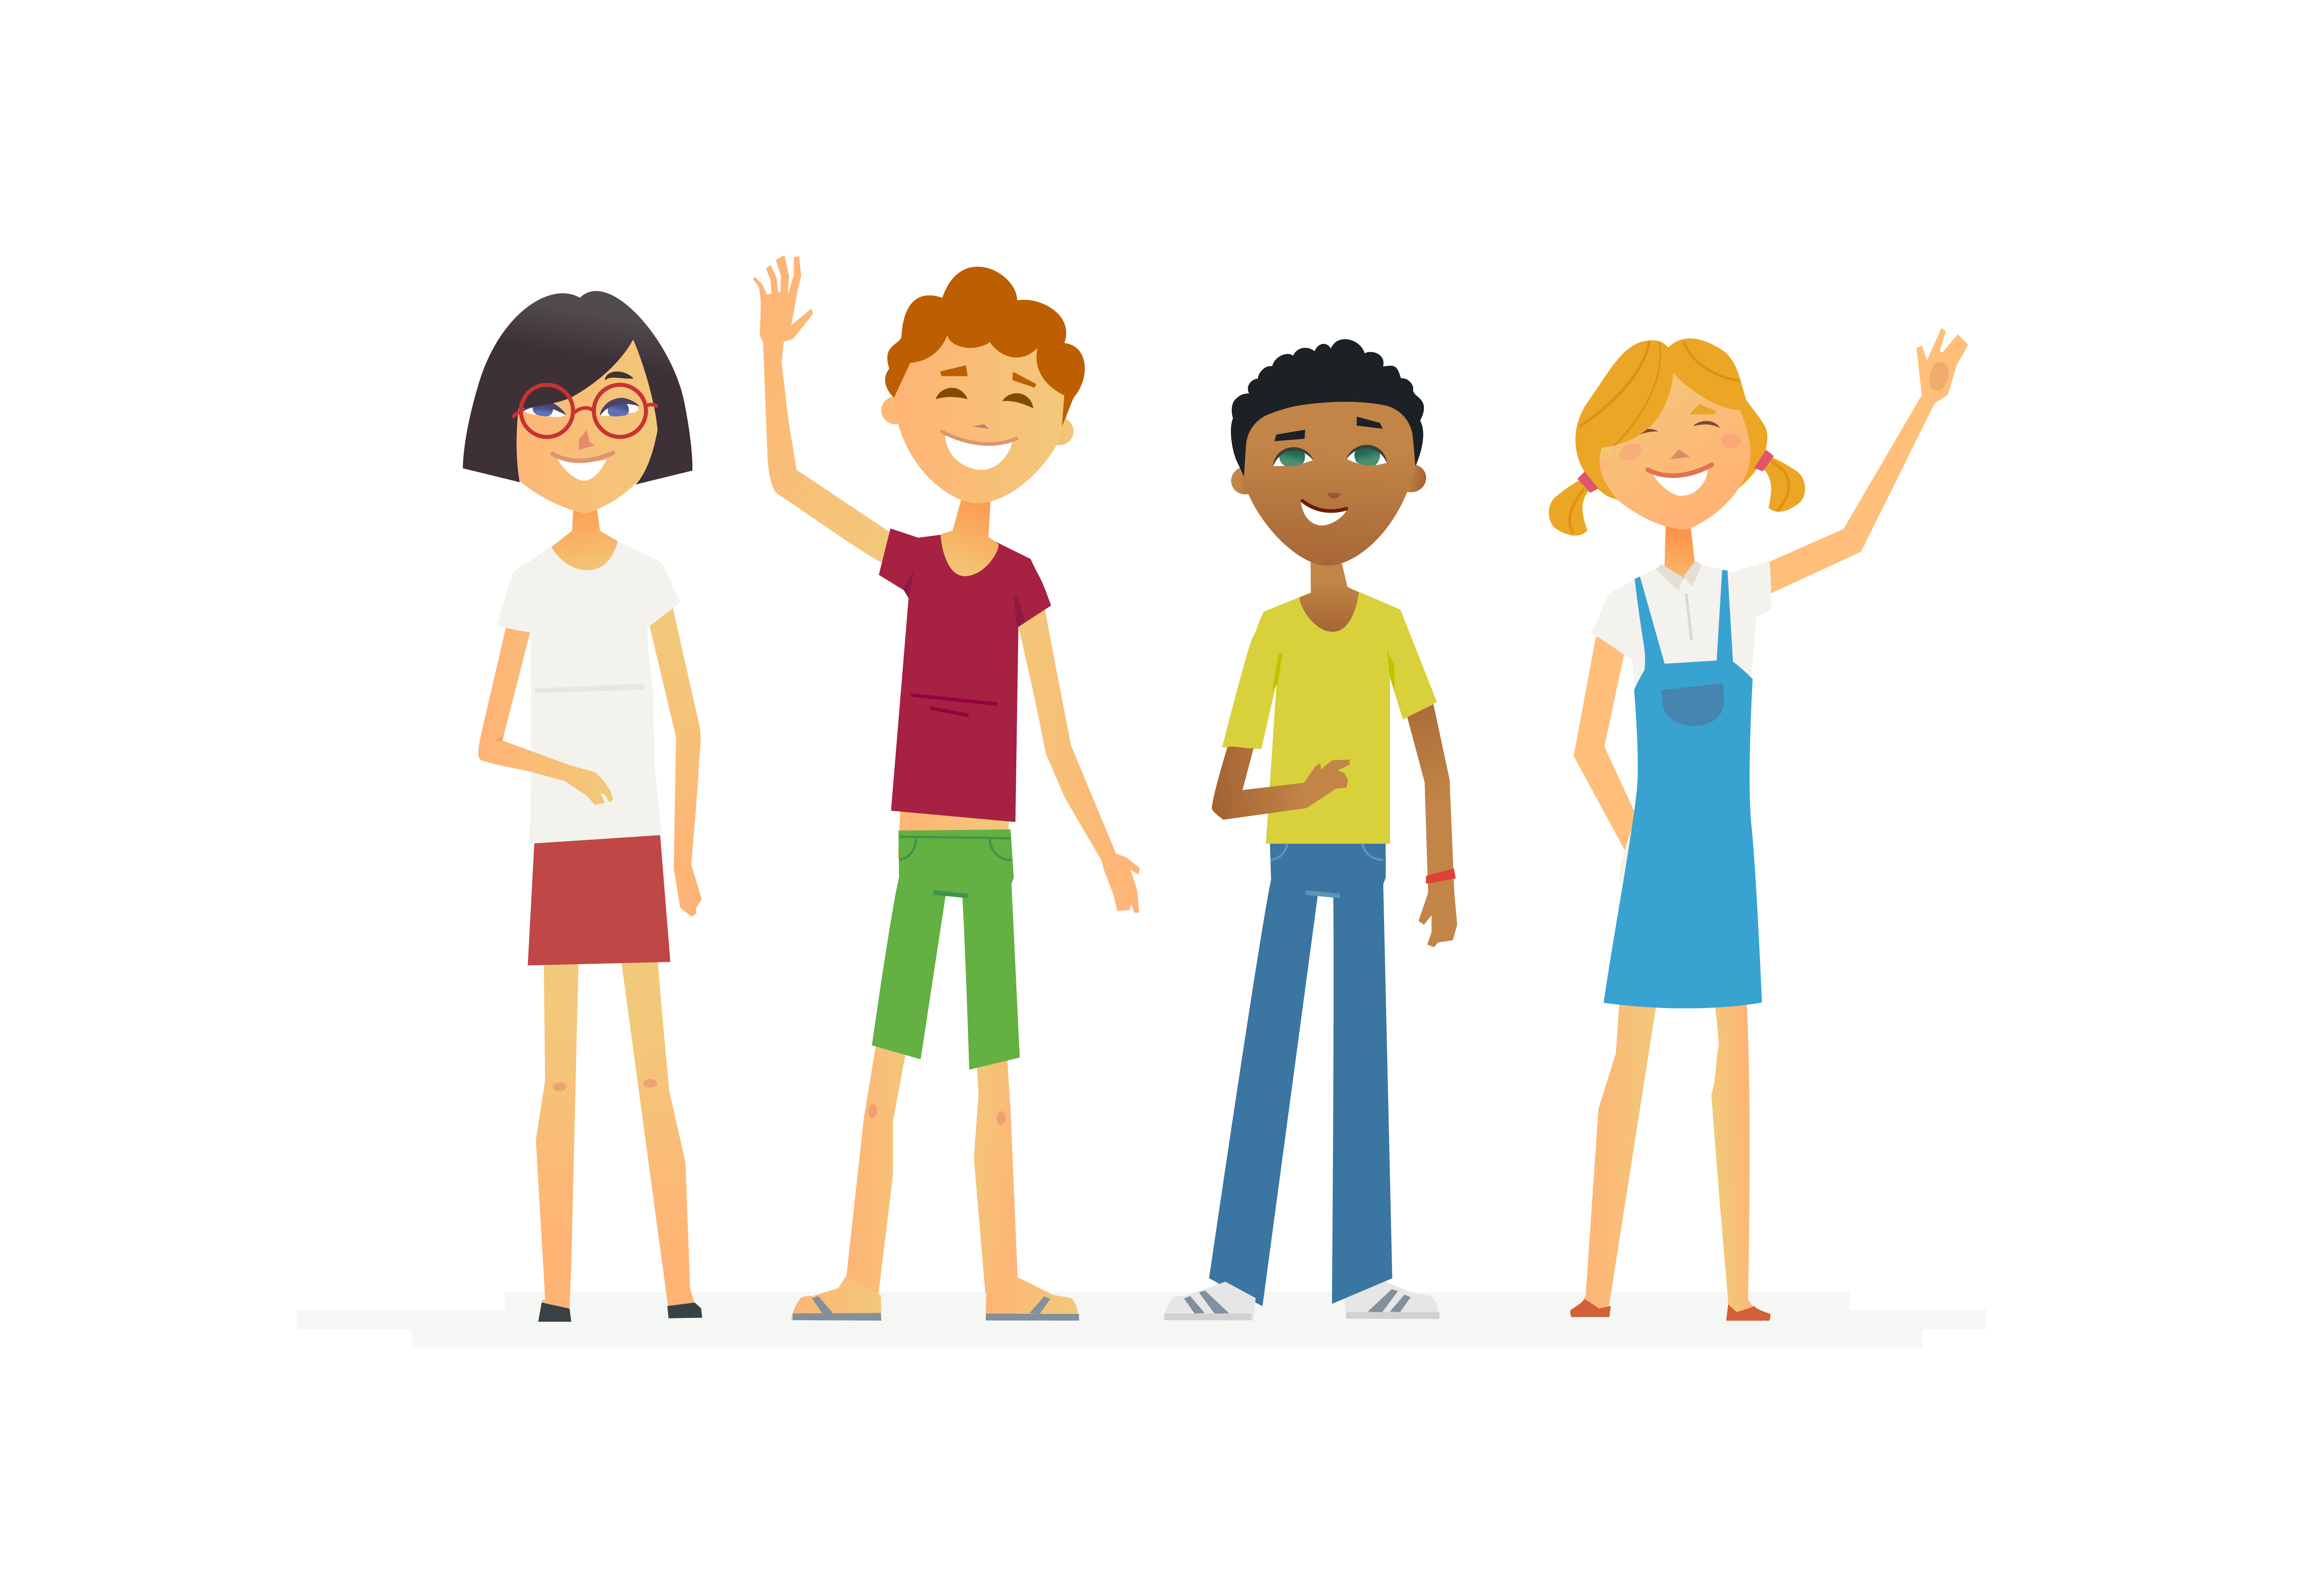 Happy standing schoolchildren - cartoon people characters isolated illustration. Smiling boys and girls waving hands. Make a great presentation with these international students